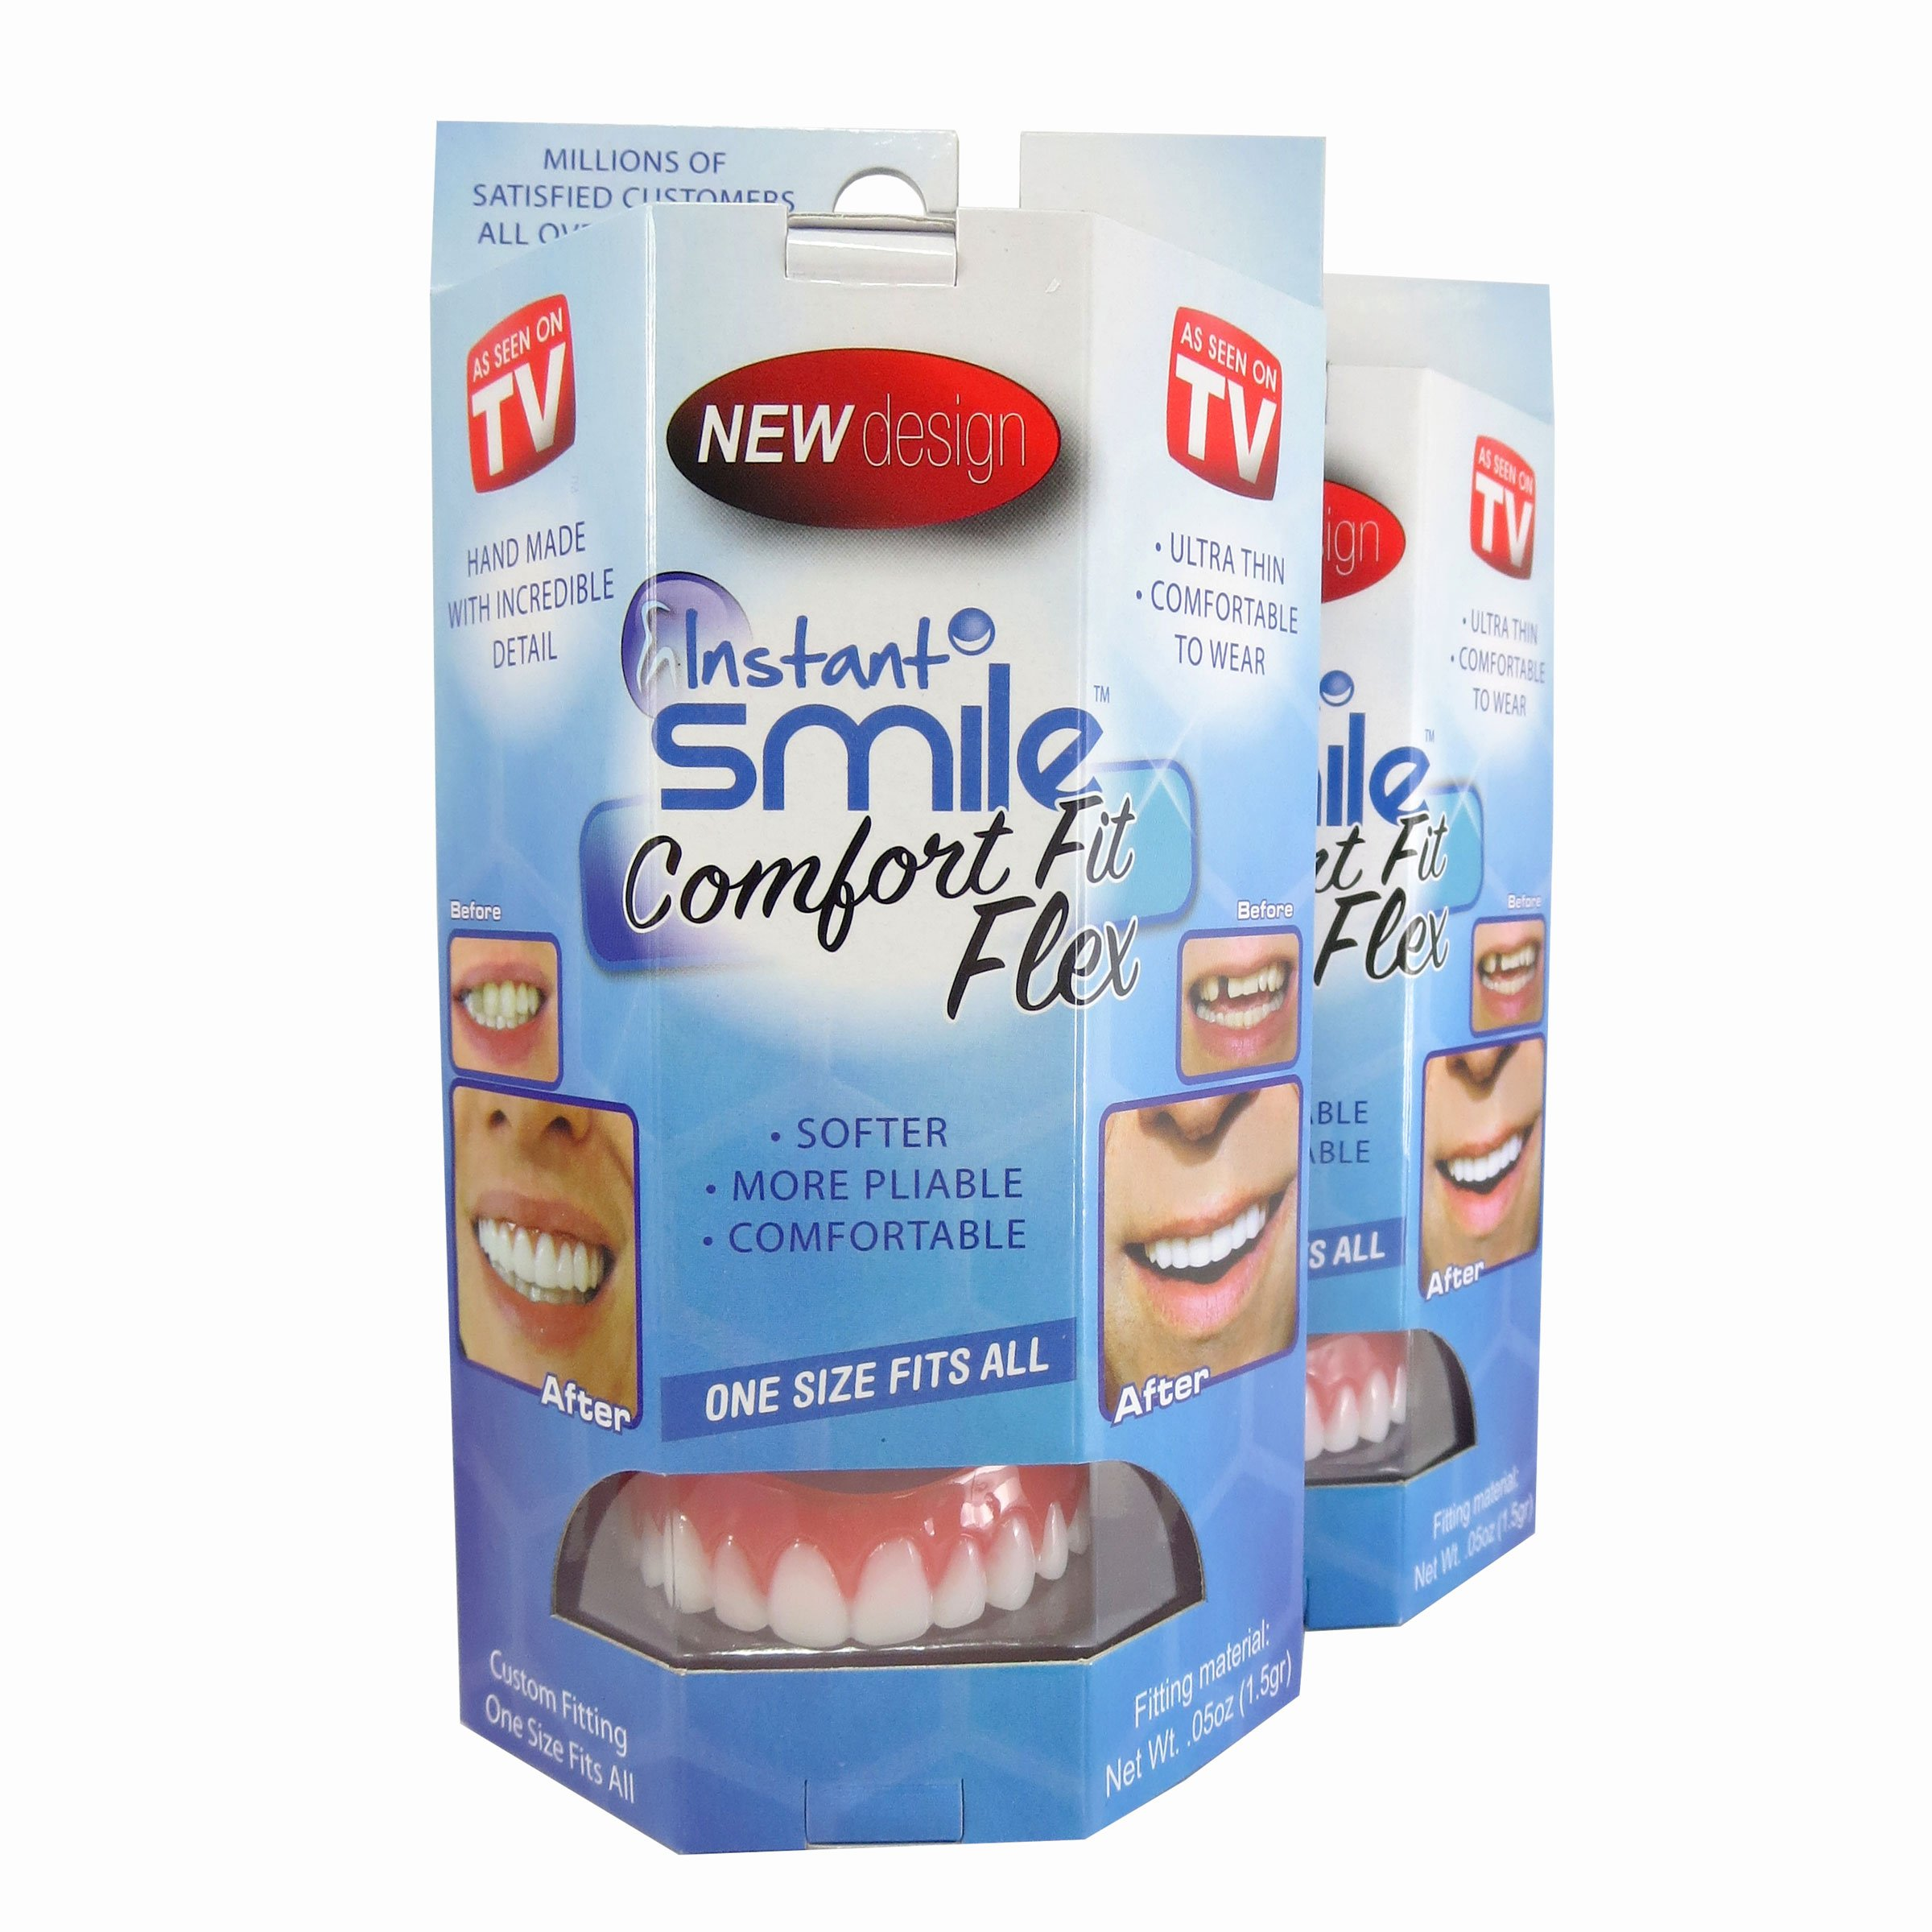 Instant Smile Flex 2pk Now You Have A Spare For Yourself OR Give The 2nd Pair To A Friend! One Size Fits Most. Fix Your Smile At Home In Minutes! Comfortable Upper Cosmetic Veneer For A Perfect Smile!